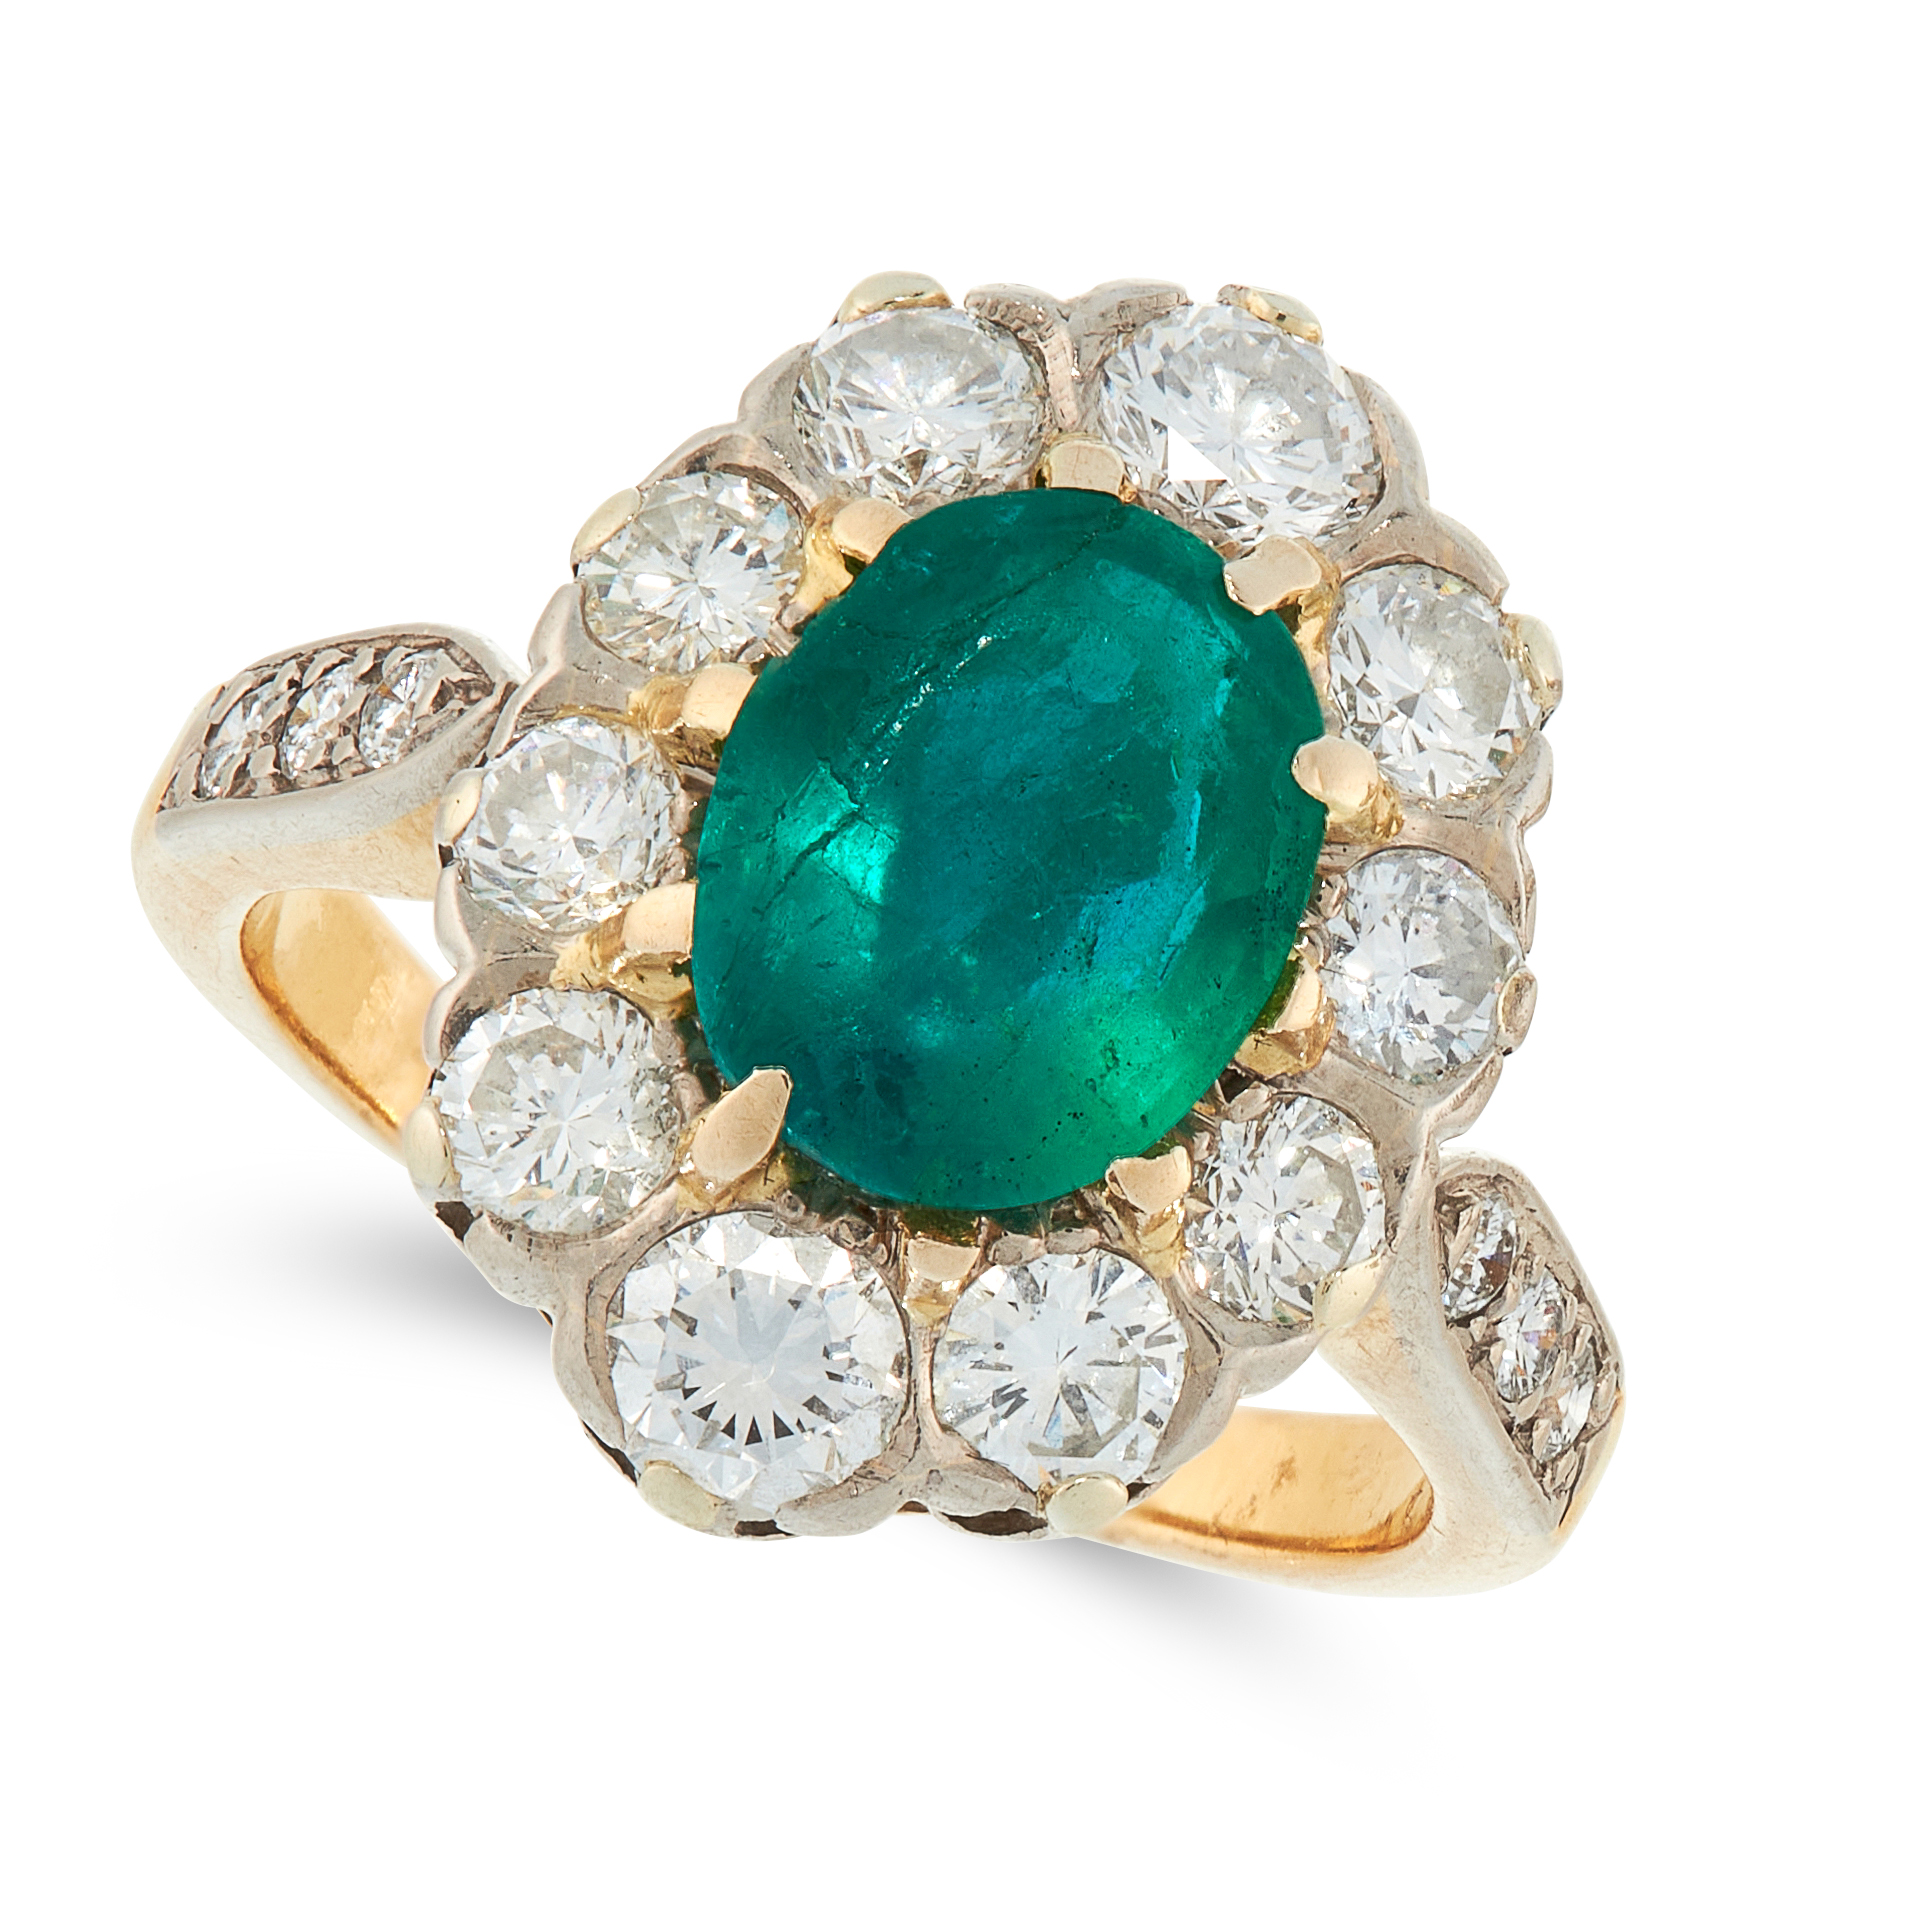 AN EMERALD AND DIAMOND DRESS RING in 18ct yellow gold, set with an oval cut emerald of 1.48 carats